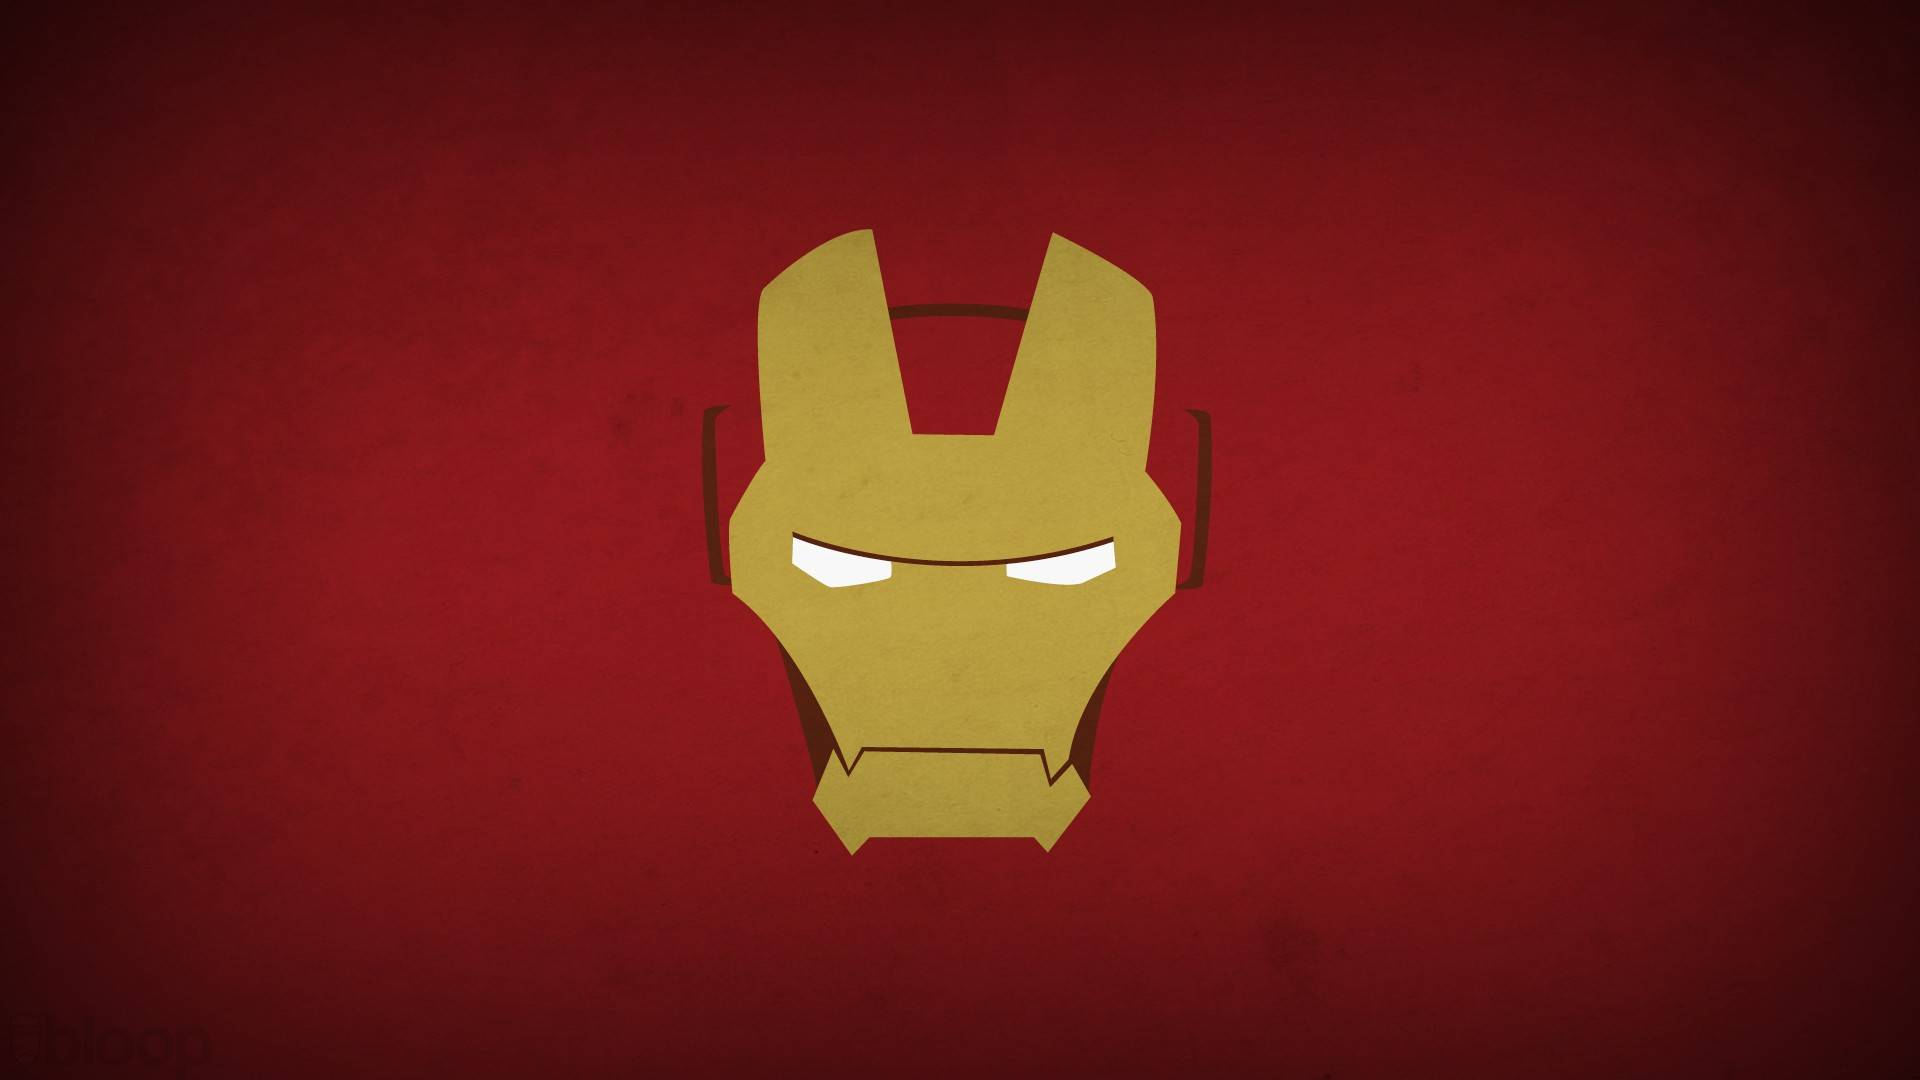 Minimalistic Superheroes 19201080 Wallpaper 2106660 1920x1080